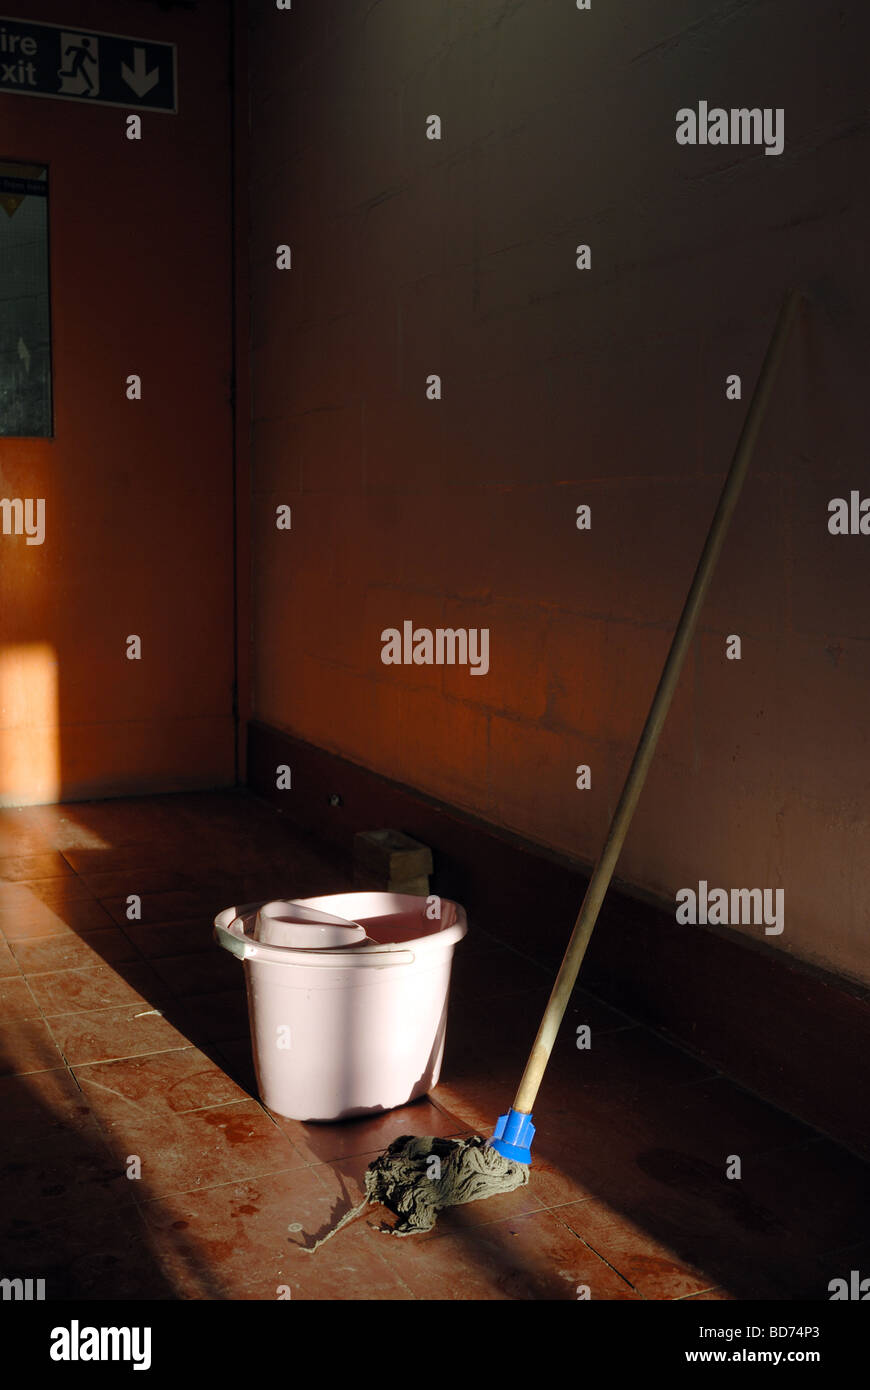 Mop and Bucket - Stock Image